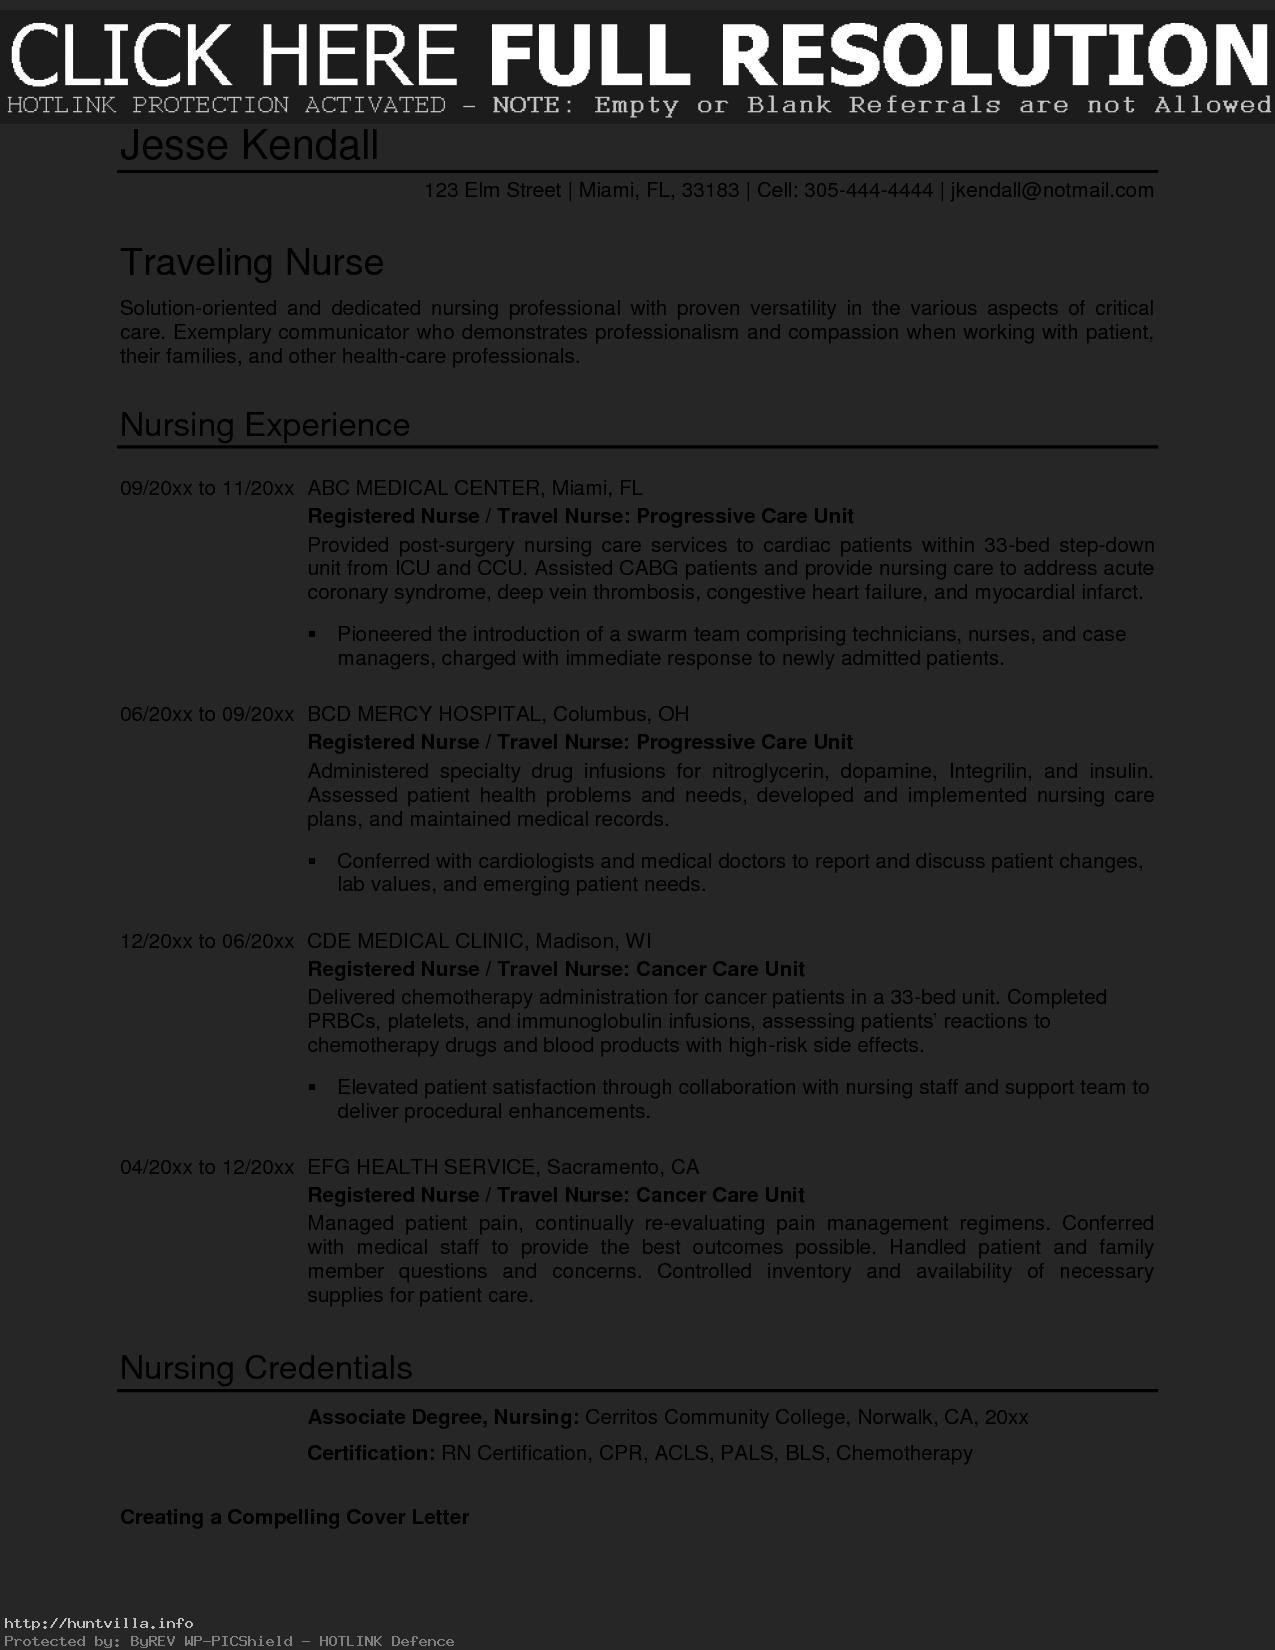 Home Health Nurse Resume - 21 Critical Care Nurse Resume